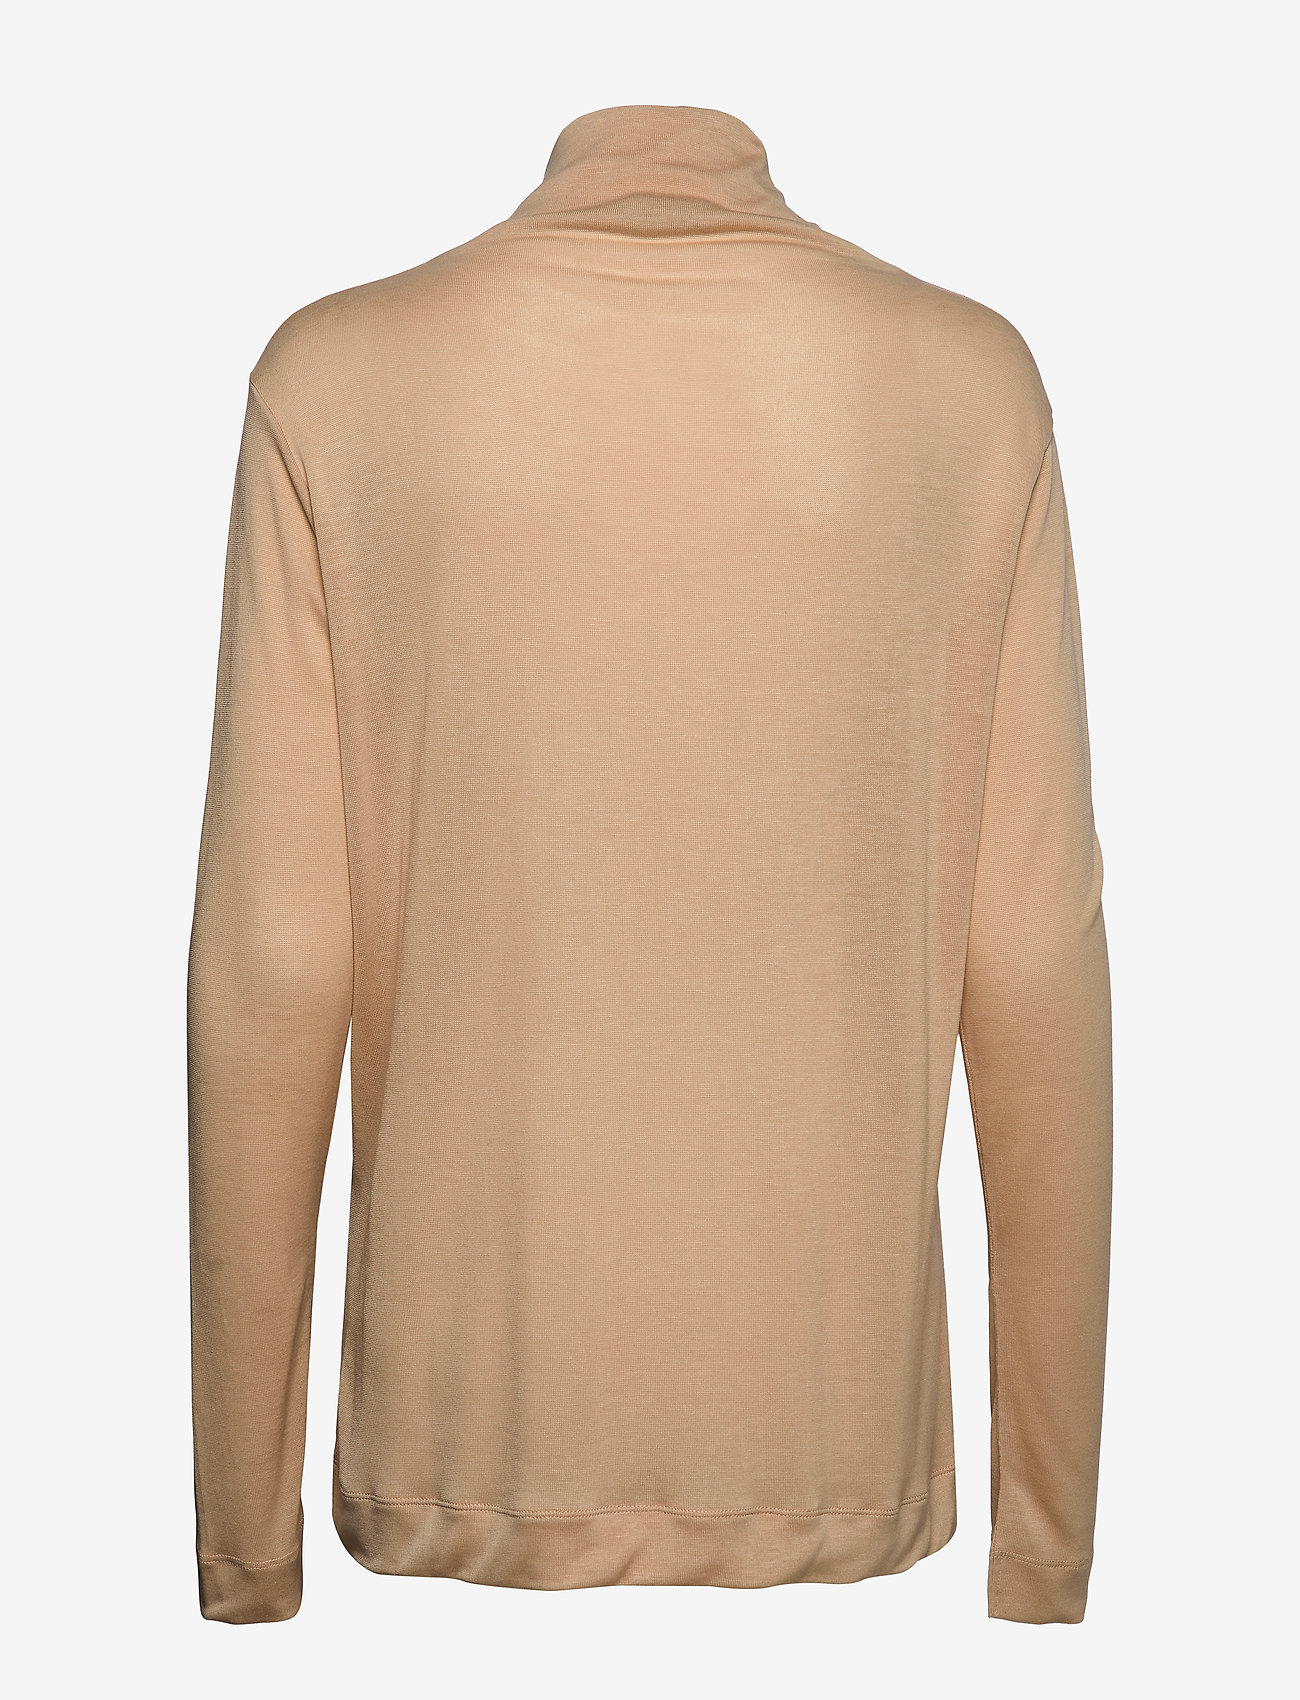 Residus - NIN TURTLENECK - turtlenecks - ginger root - 1